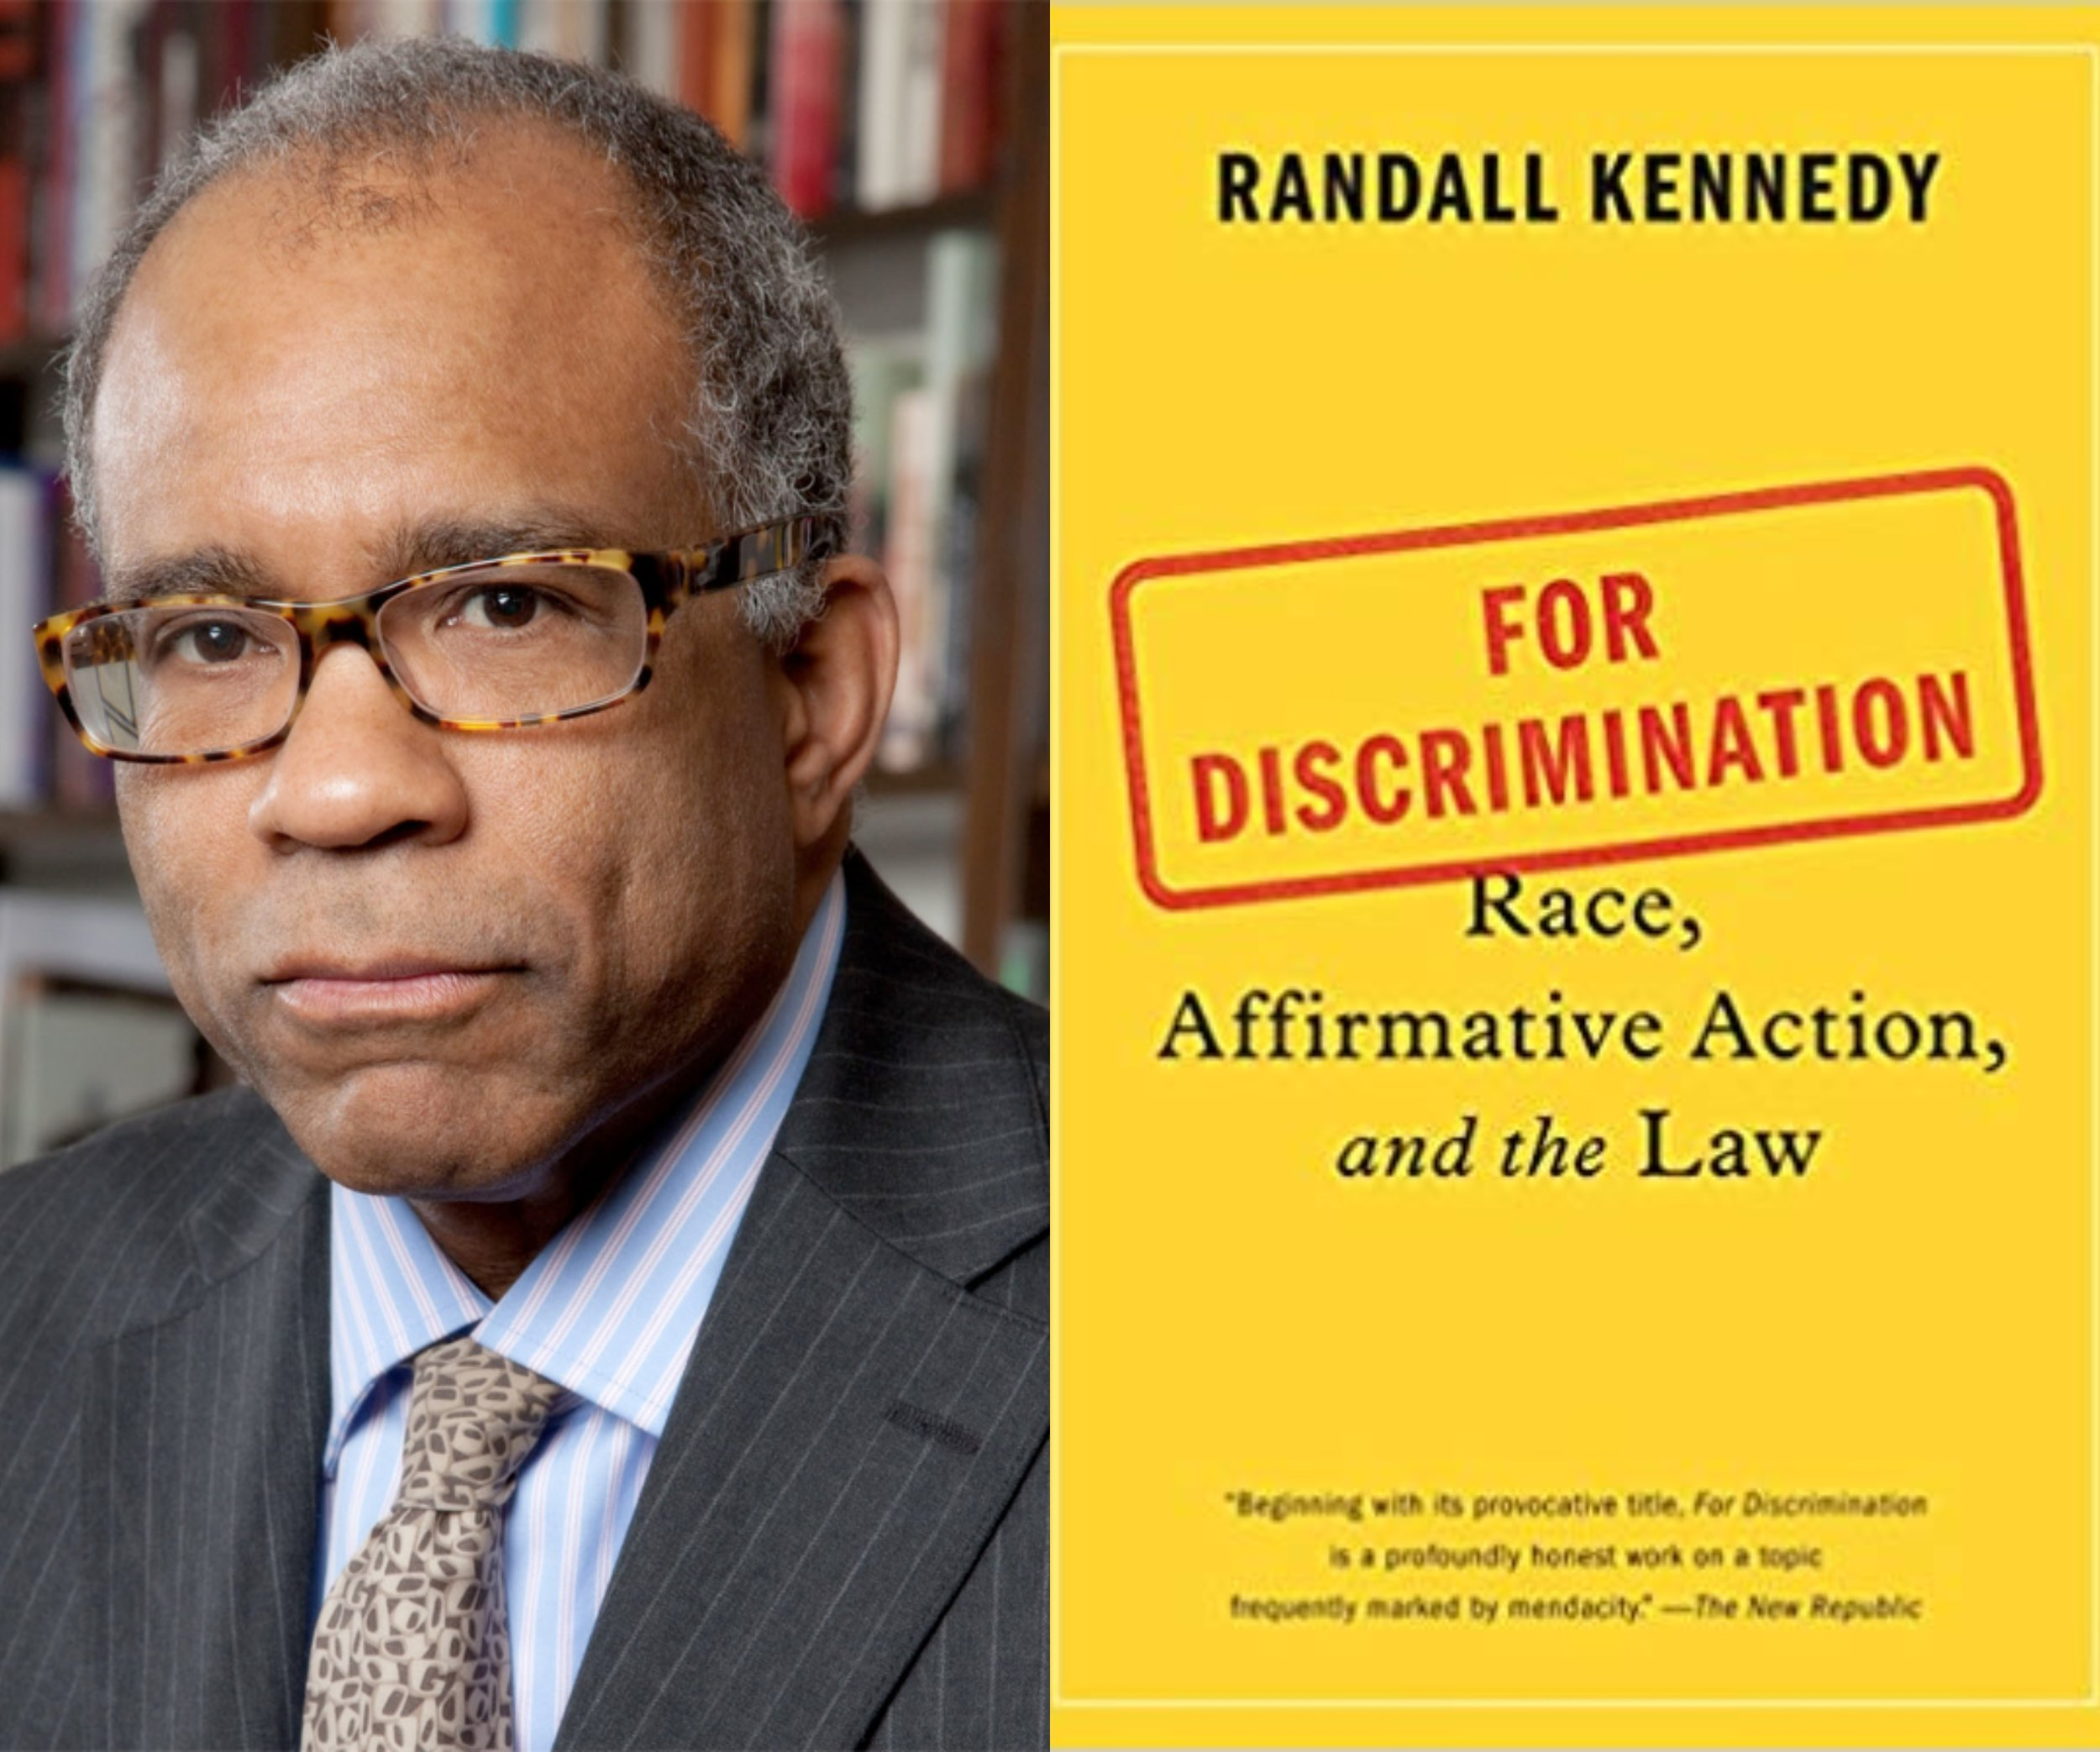 FREE SPEECH 41: FOR Discrimination. A Case for Affirmative Action, with Randall Kennedy - READ MORE